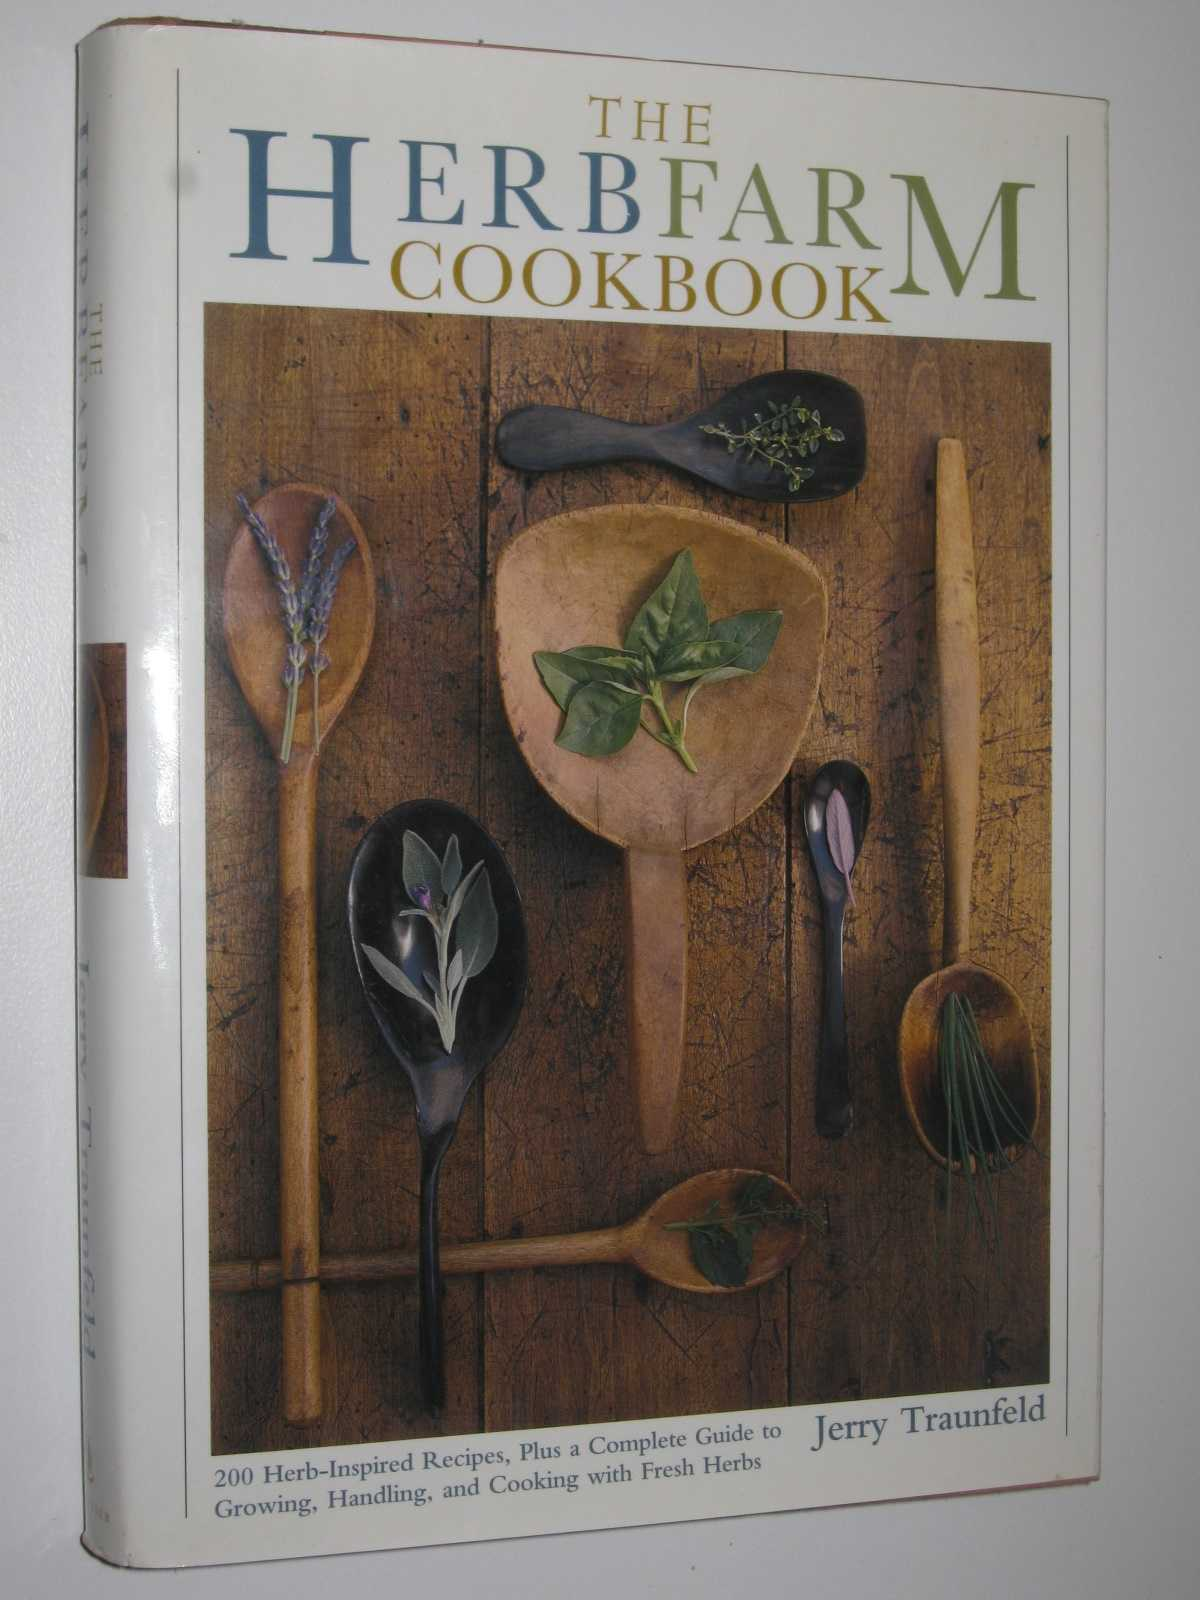 The Herbfarm Cookbook, Traunfled, Jerry